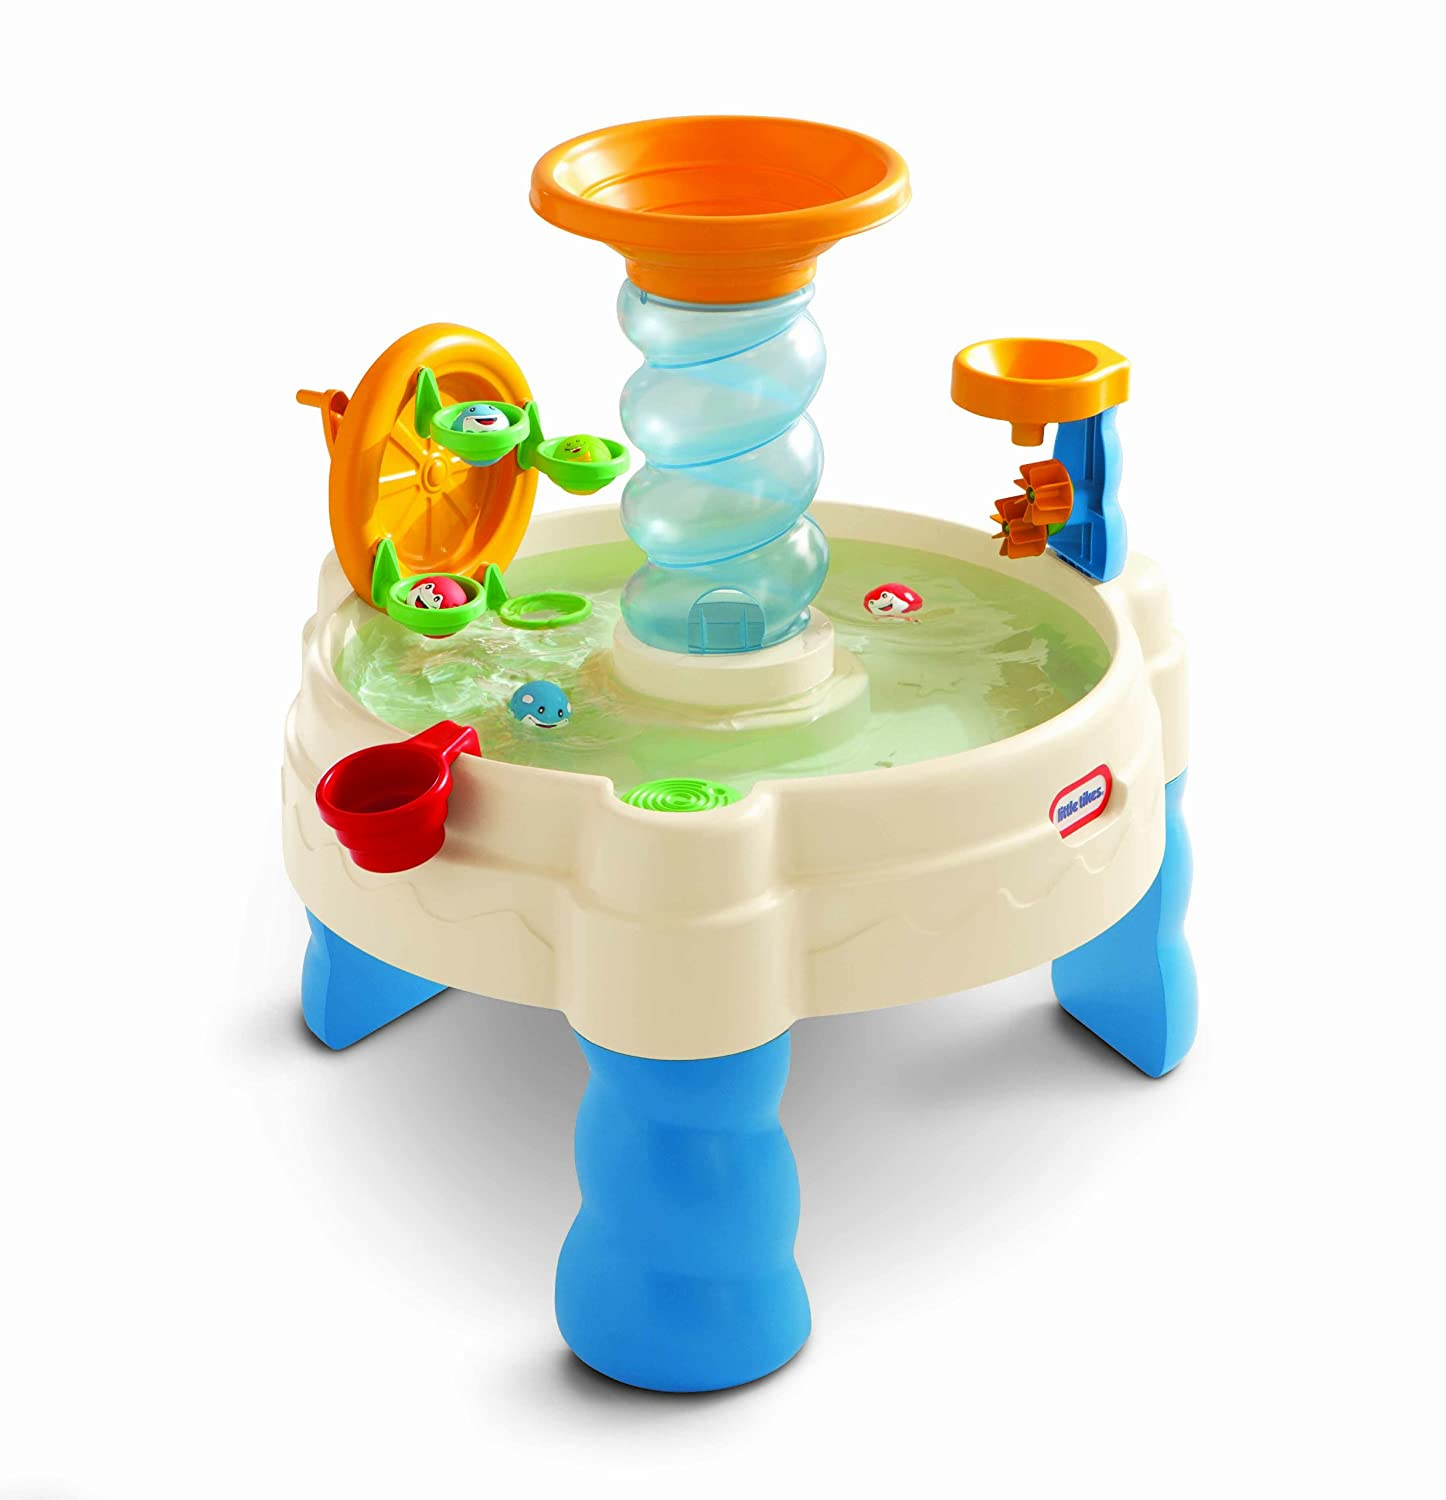 Little Tikes Spiralin' Seas Waterpark